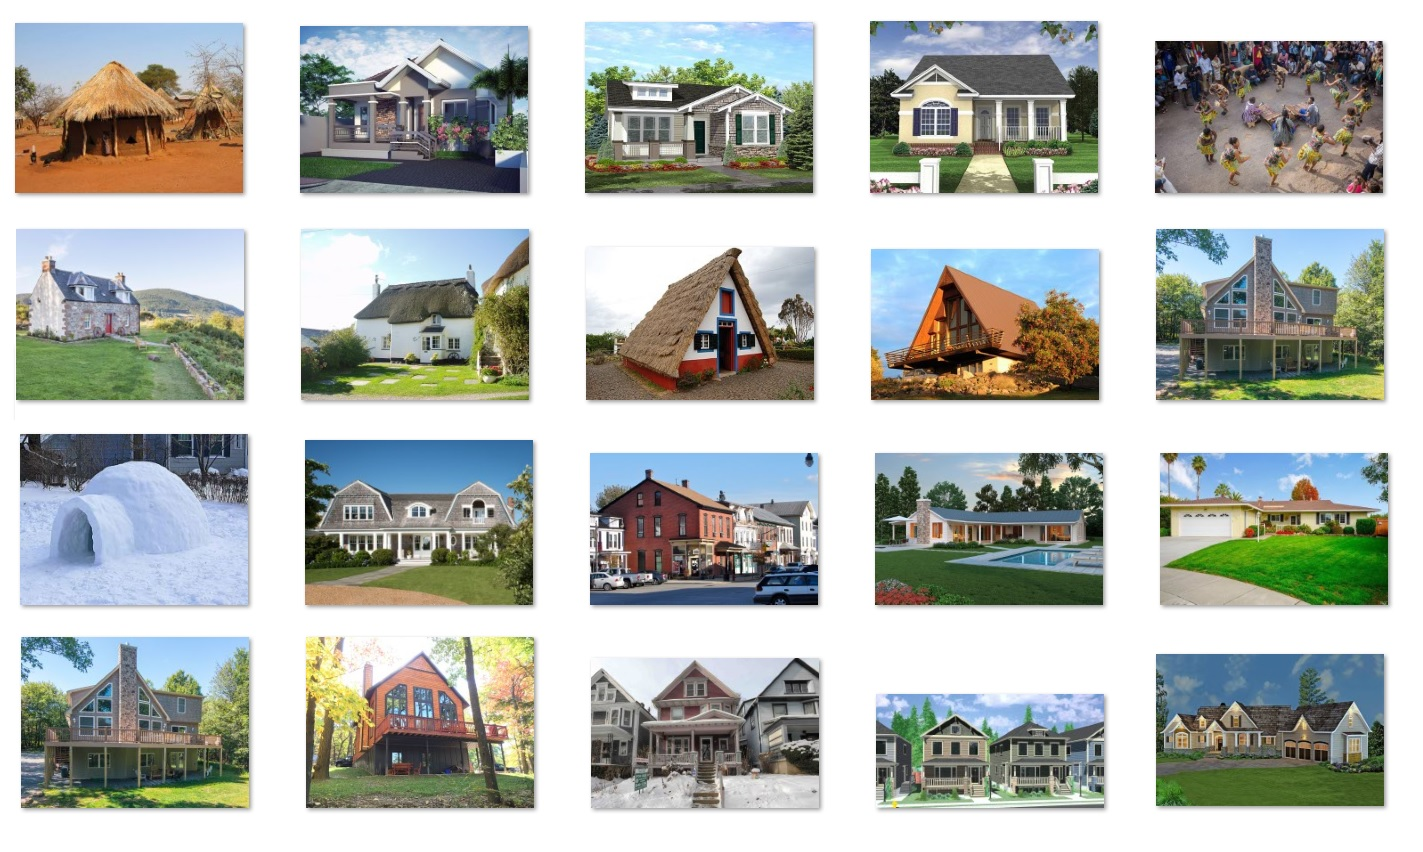 Types of houses in the World with Pictures - meqasa blog